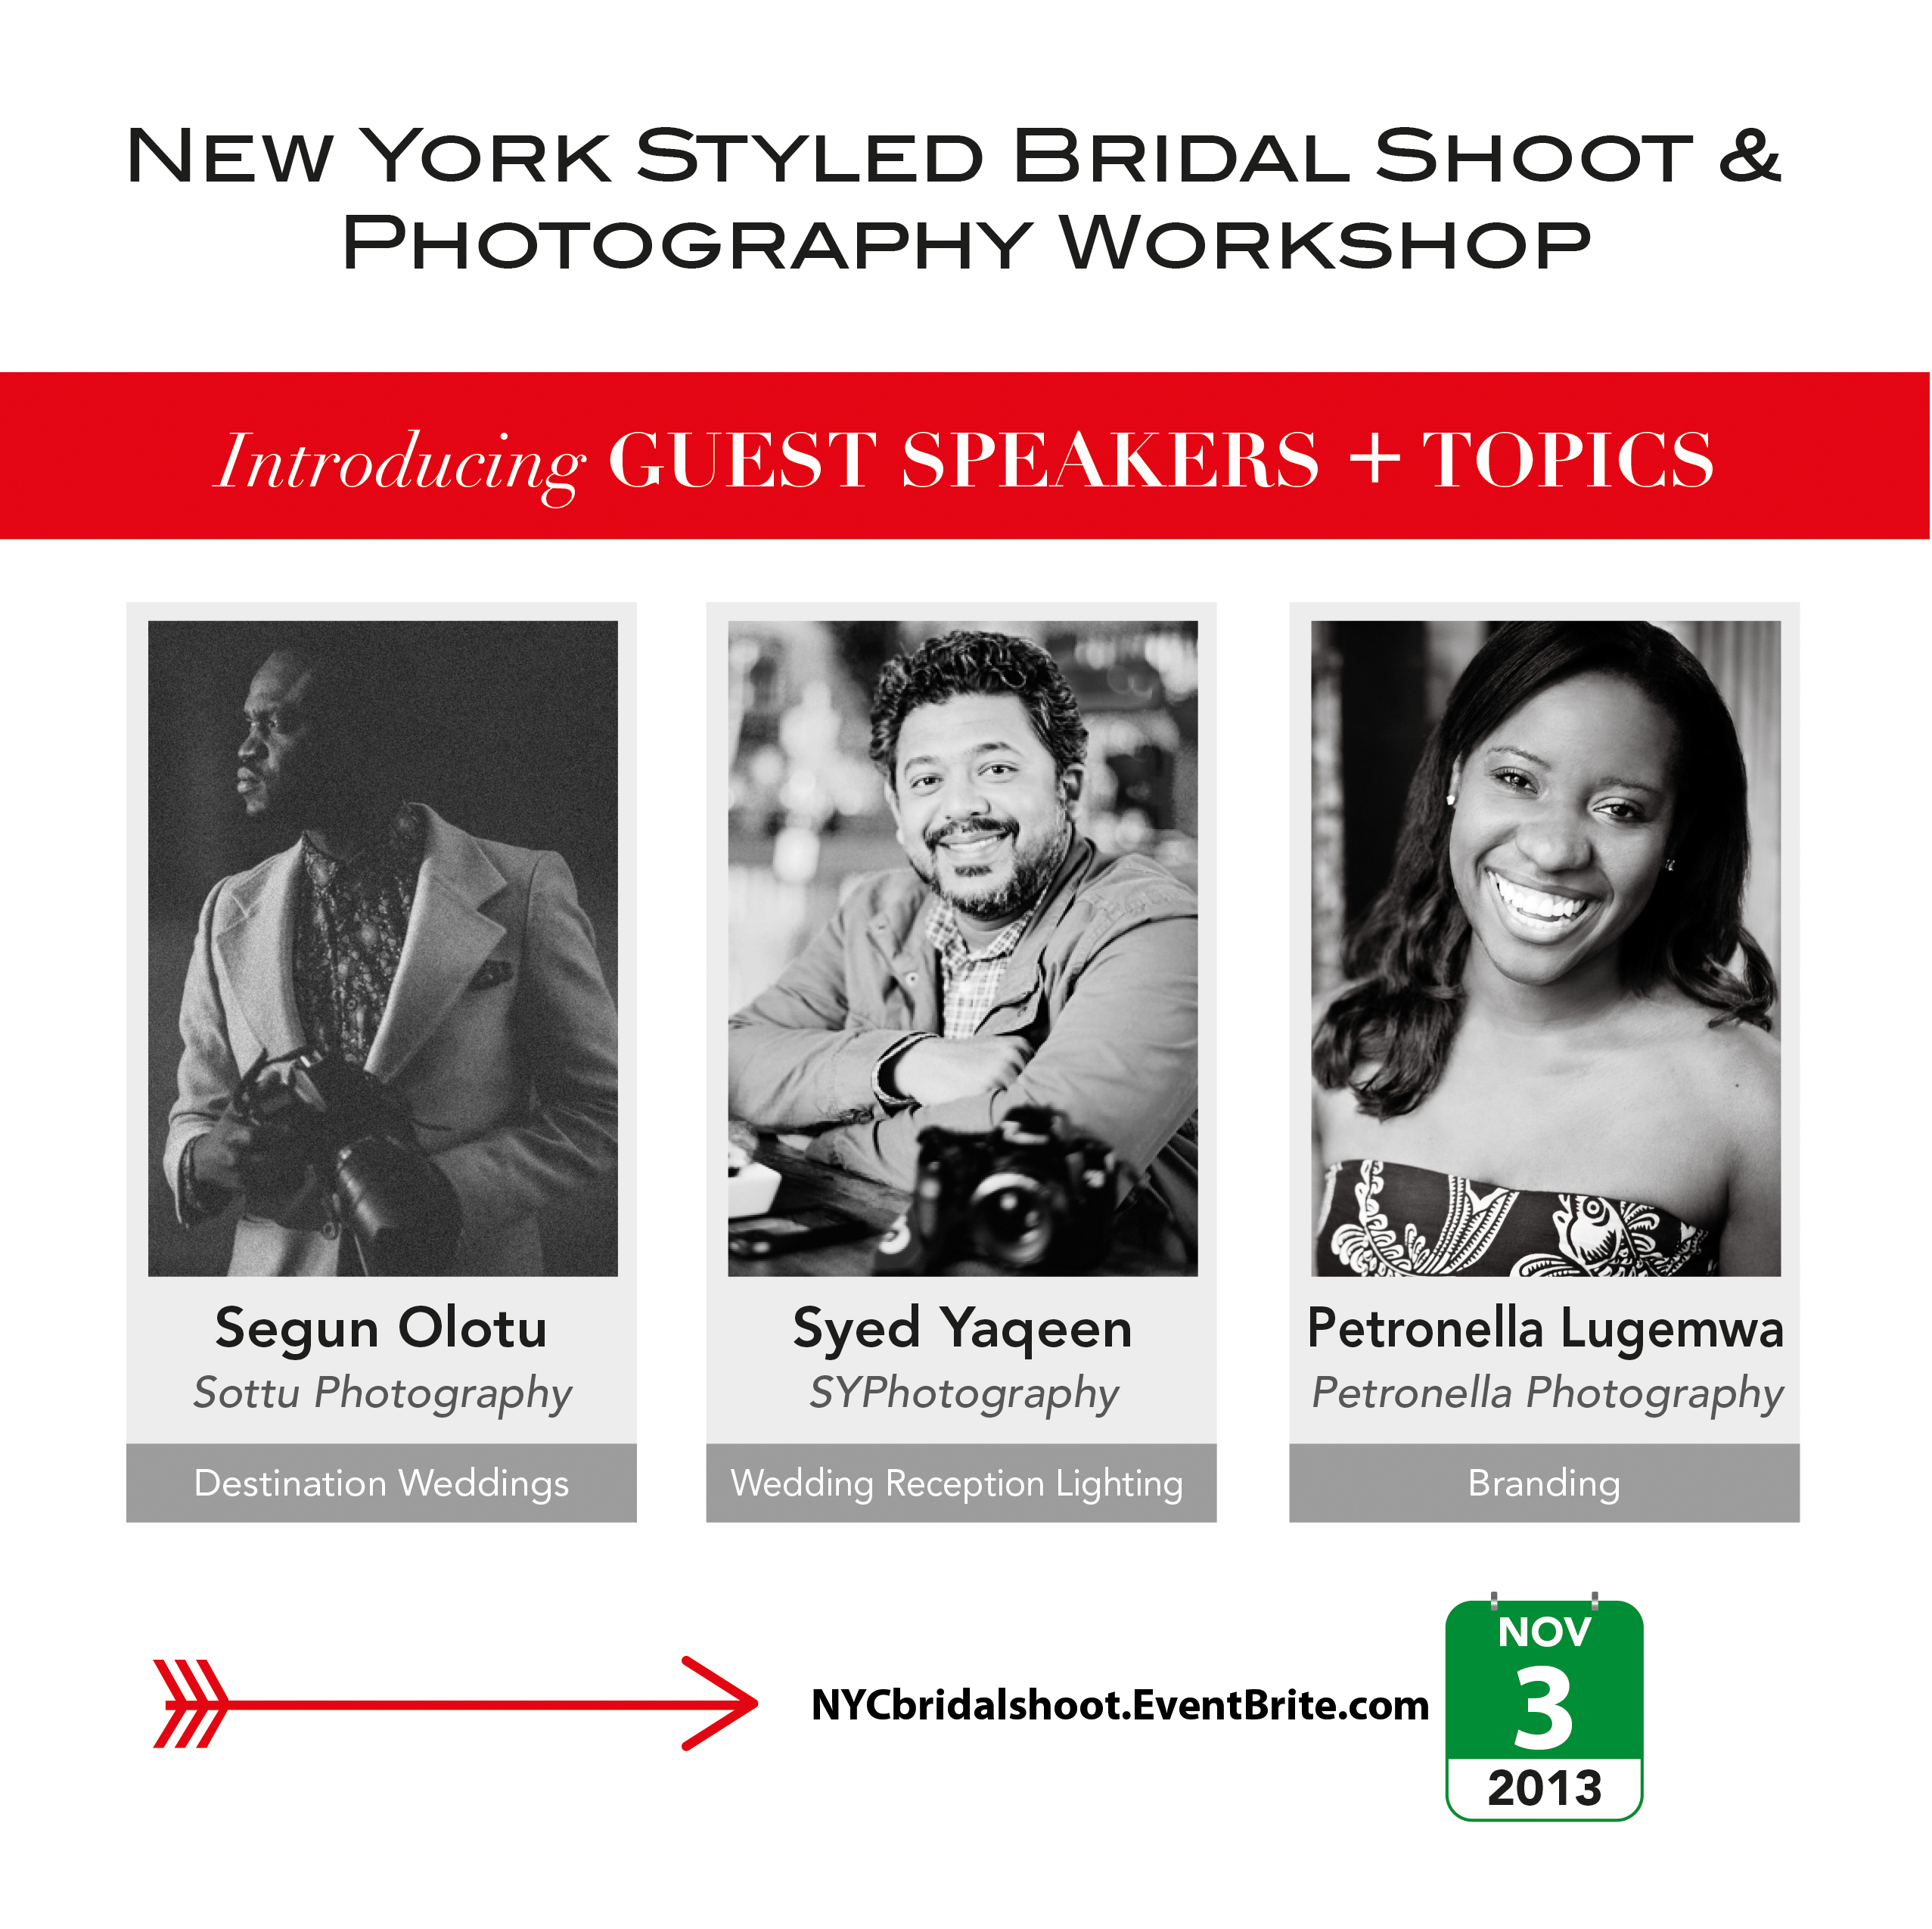 Shoot Photography Workshops: 2013 NYC Styled Shoot Workshop + Photography Business Workshop